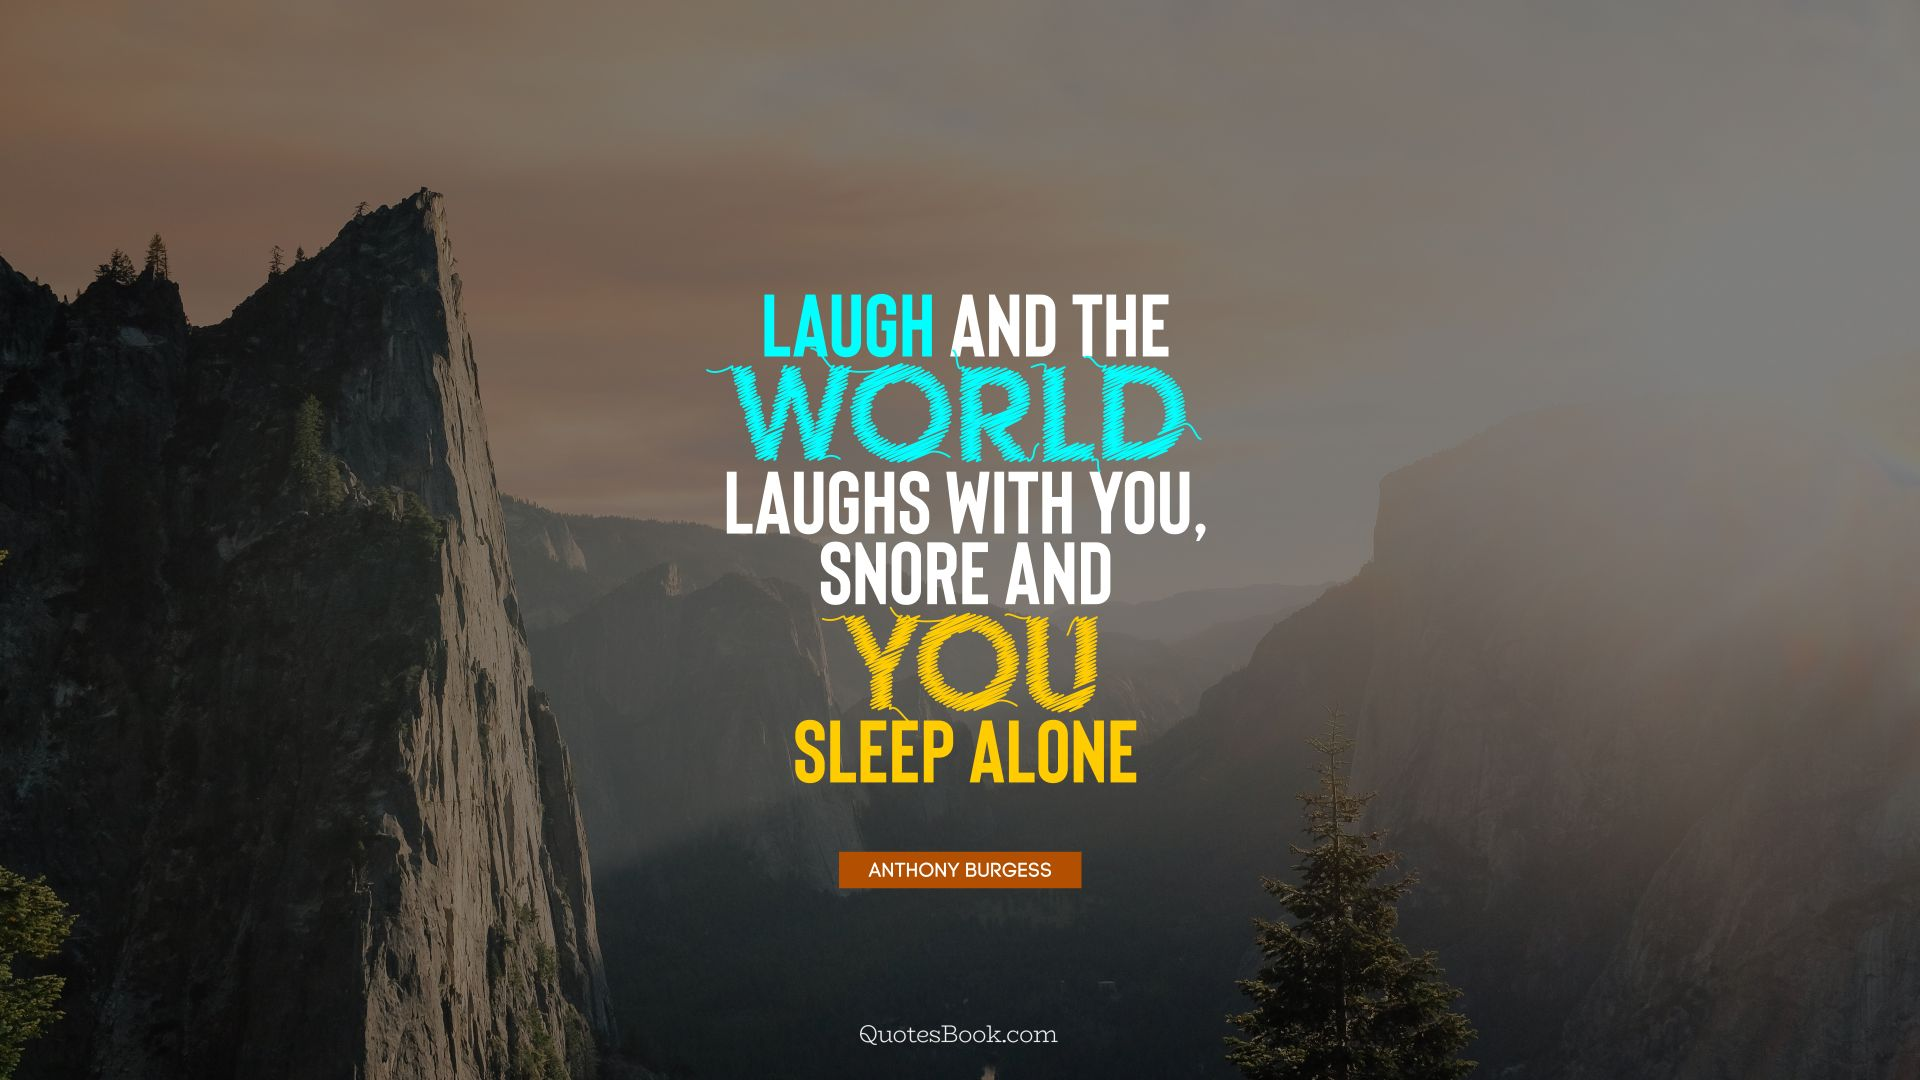 Laugh and the world laughs with you, snore and you sleep alone. - Quote by Anthony Burgess